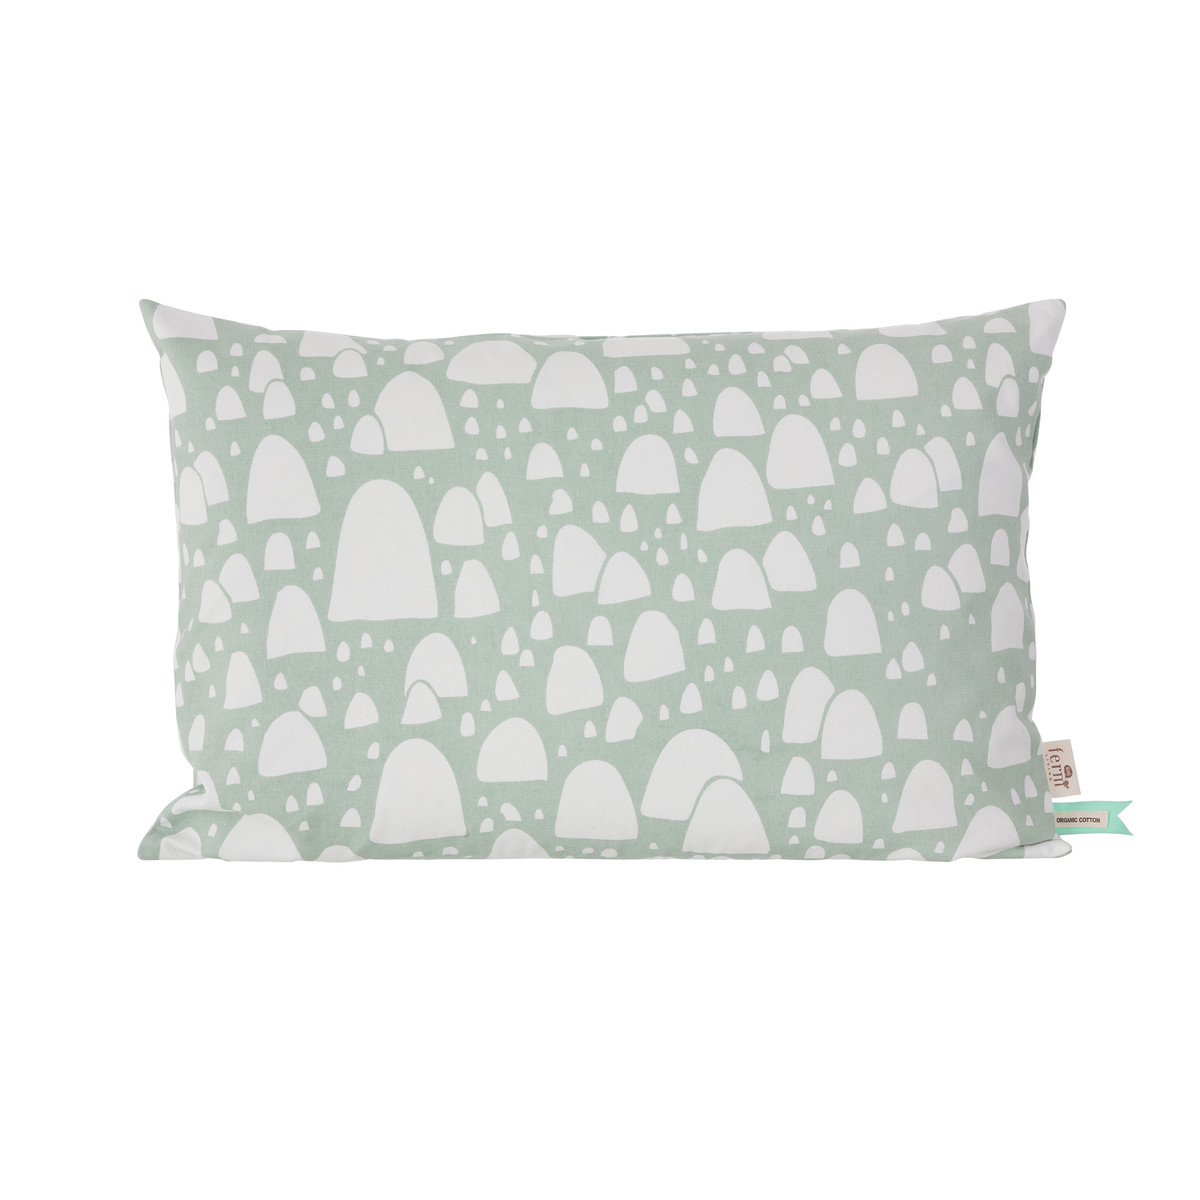 Kopfkissen 60x40 ᐅ Ferm Living Mountain Tops Kissen 60 X 40 Cm Mintgrün Kissenjunkie